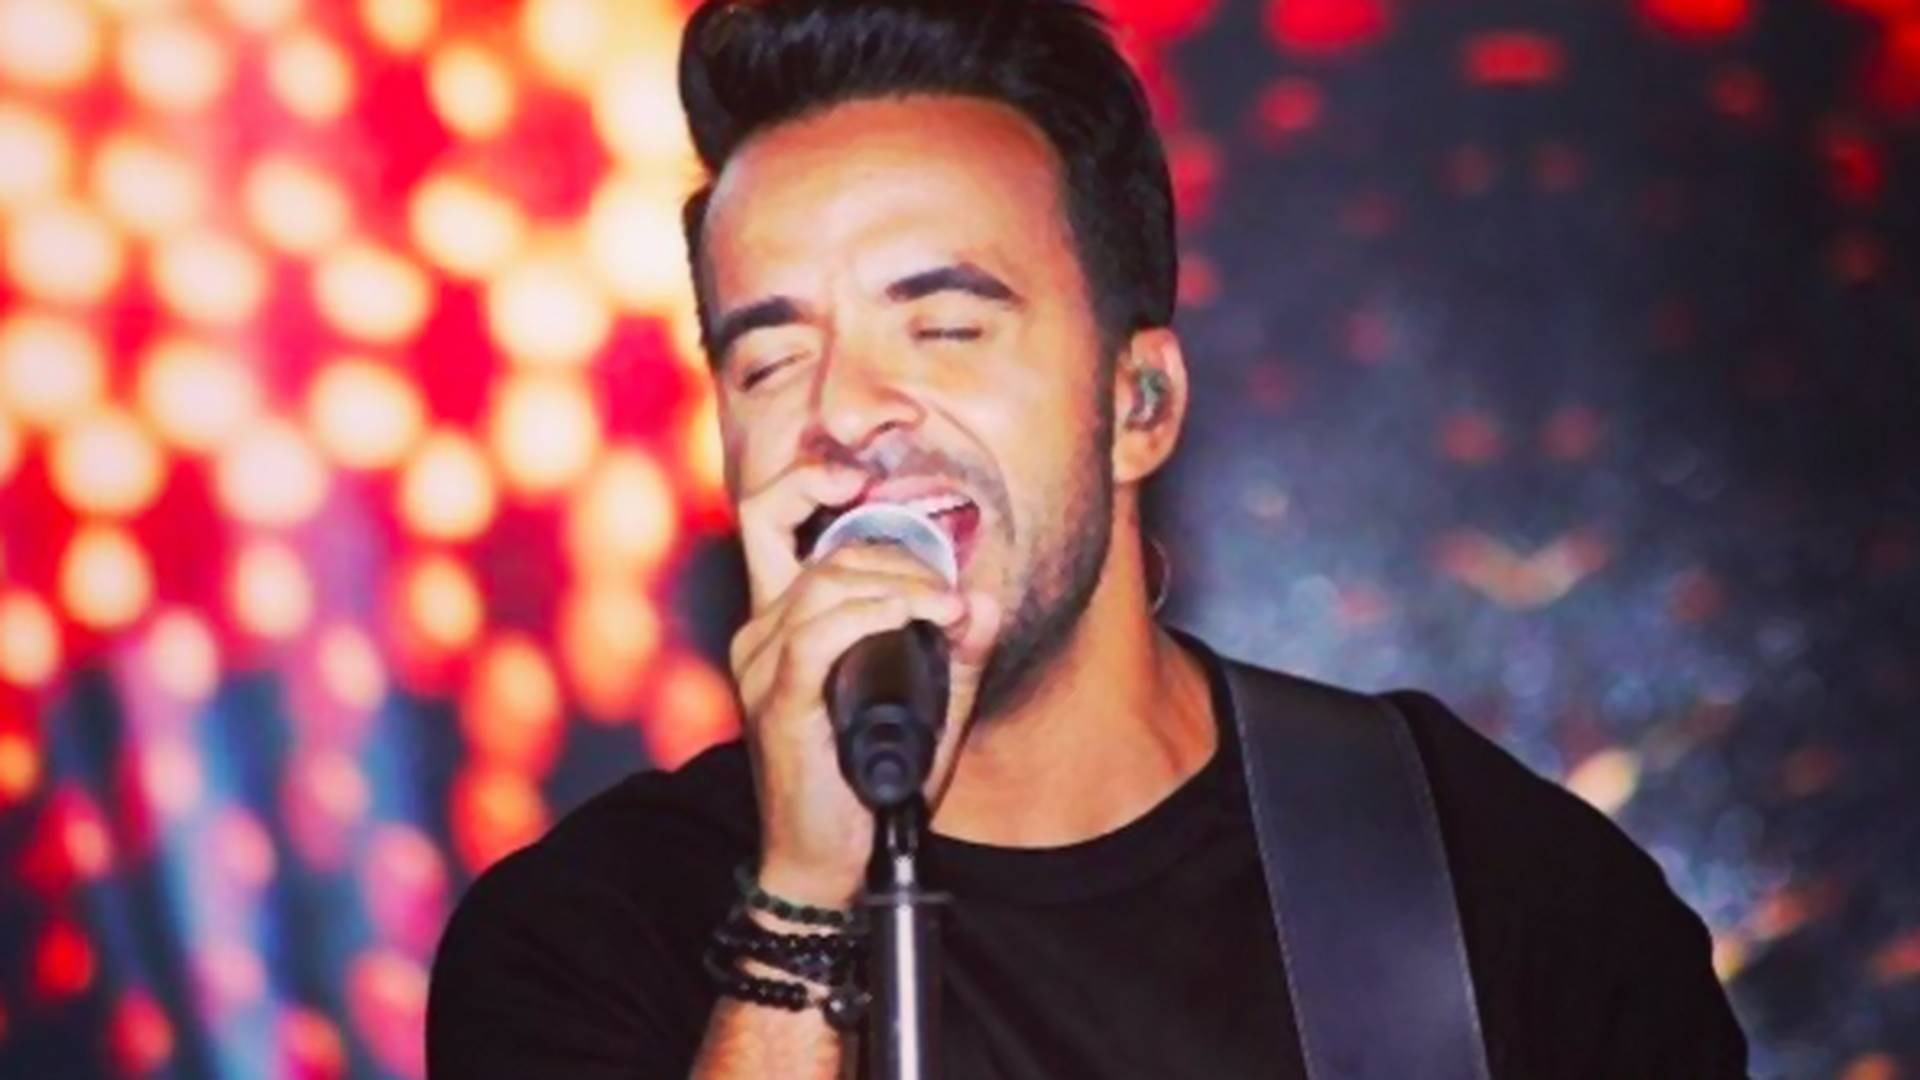 """Despacito""-Star Luis Fonsi: So entstand der Mega-Hit mit Justin Bieber"